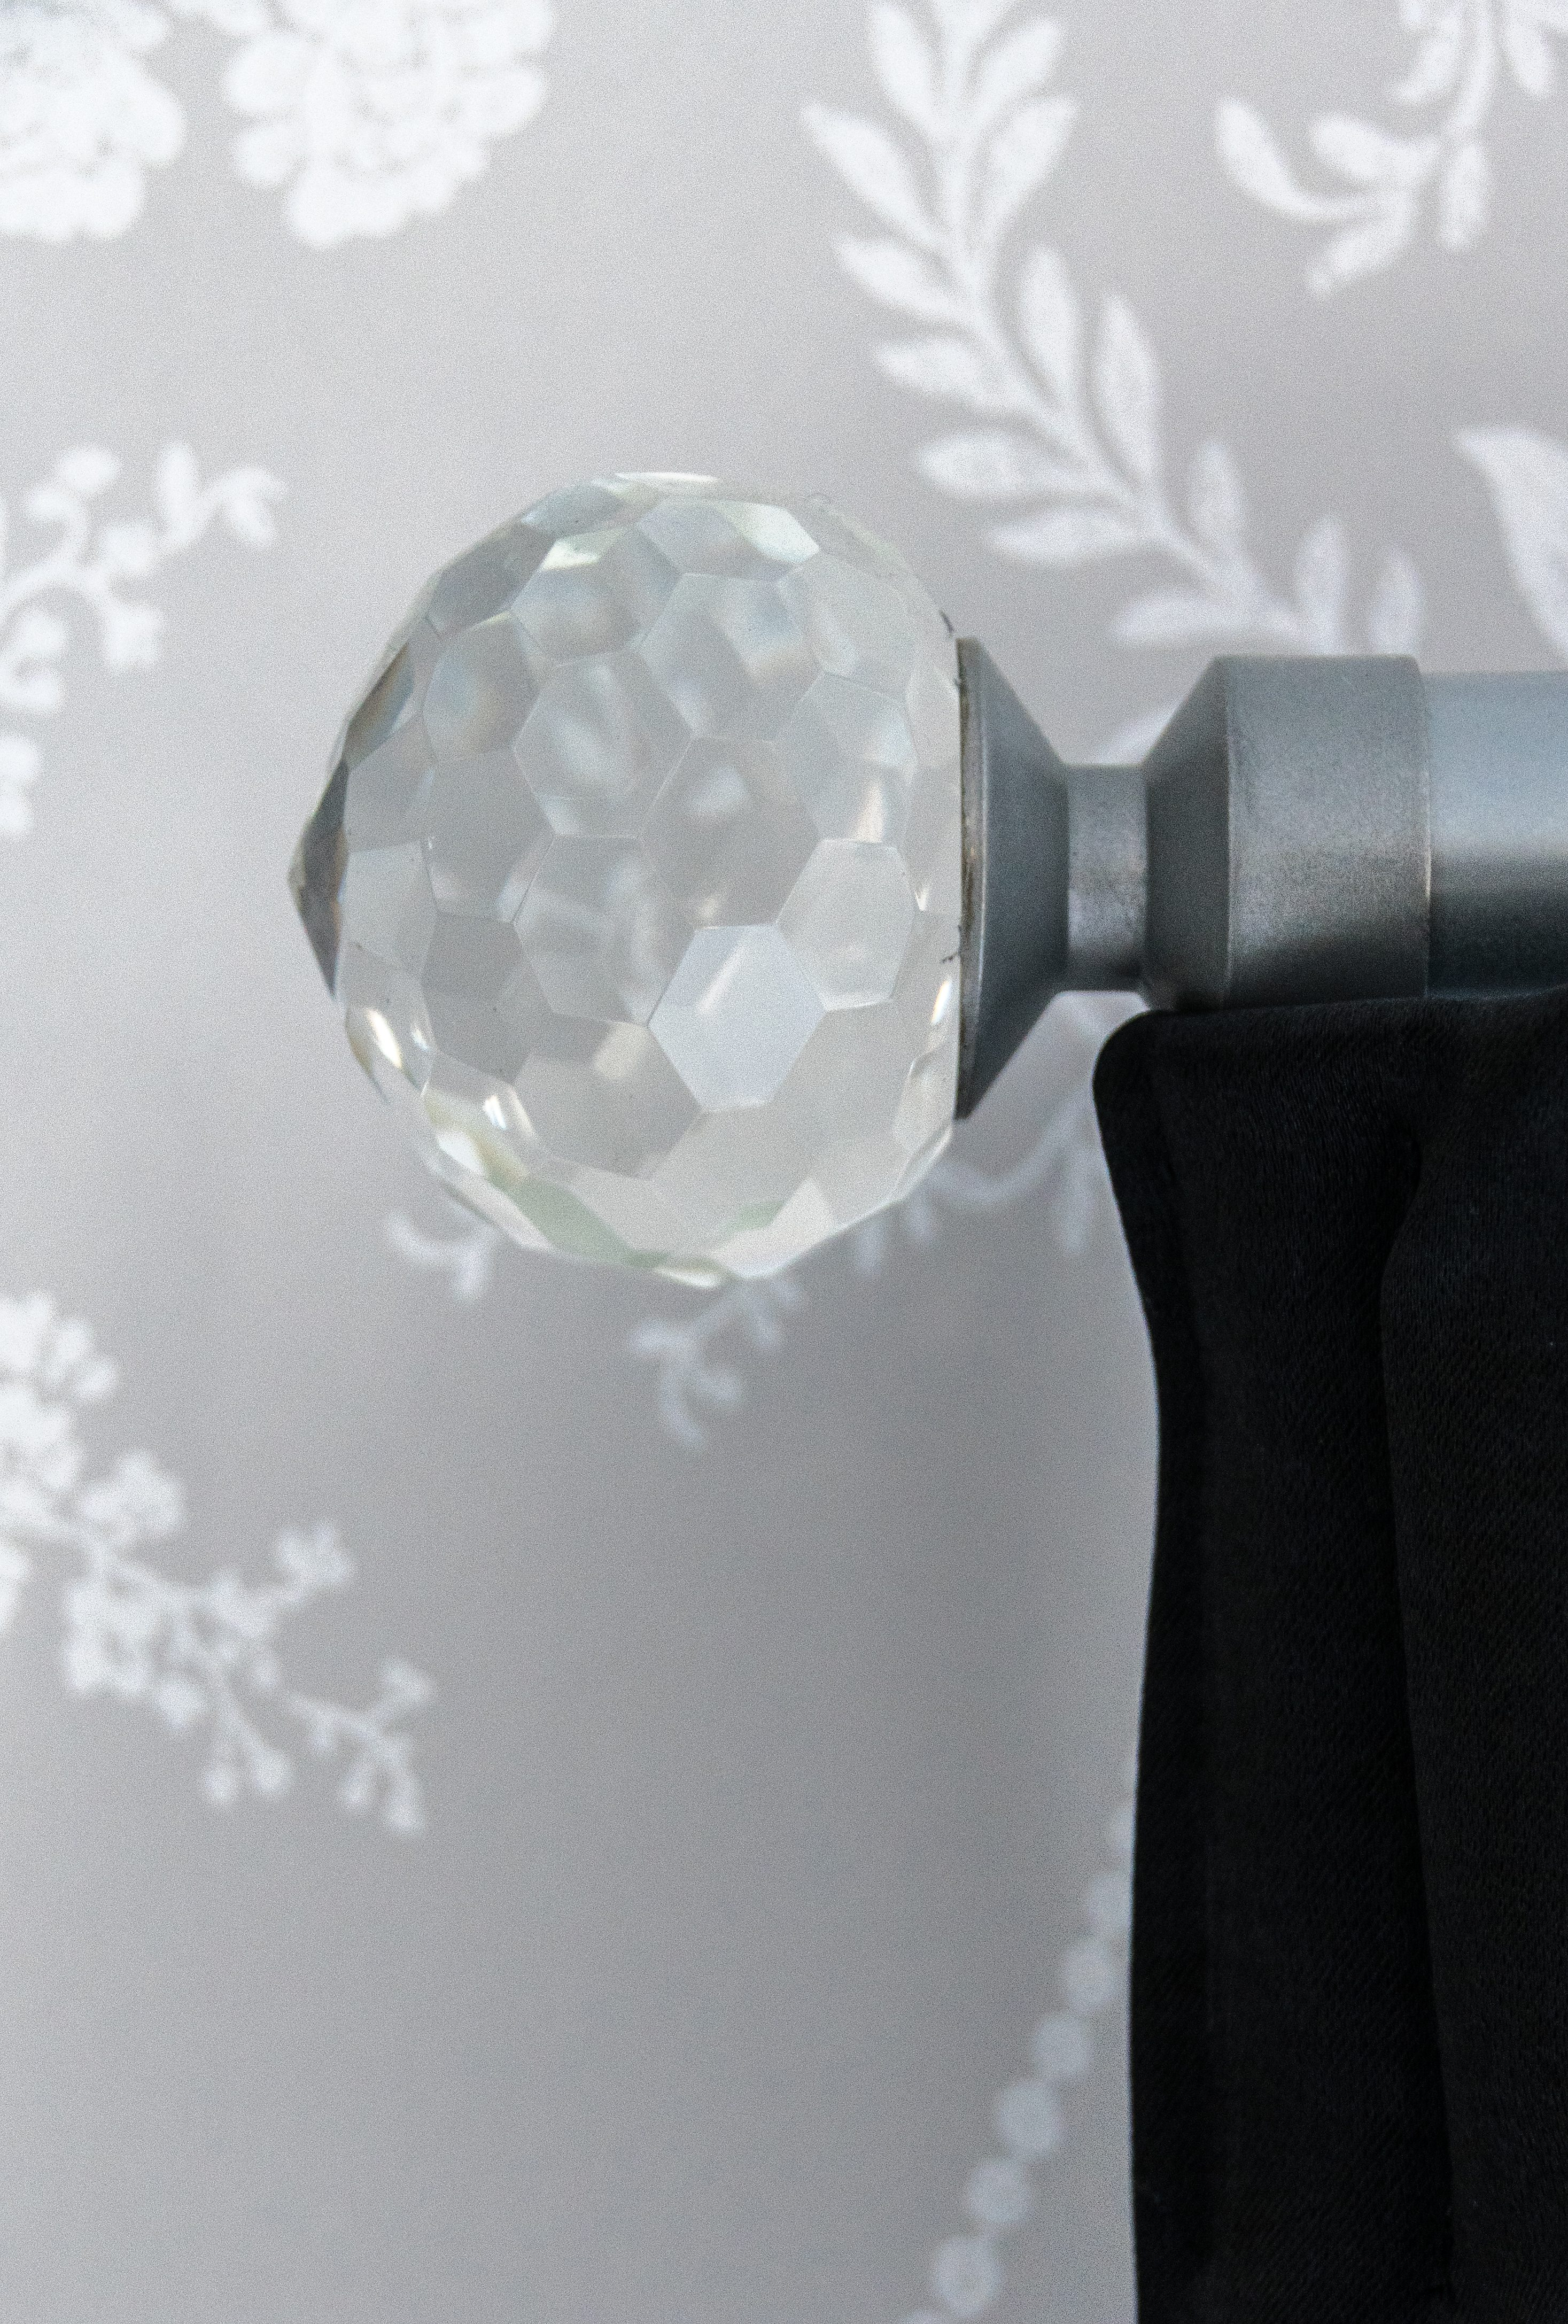 Crystal finial on rod with black curtains-closeup2